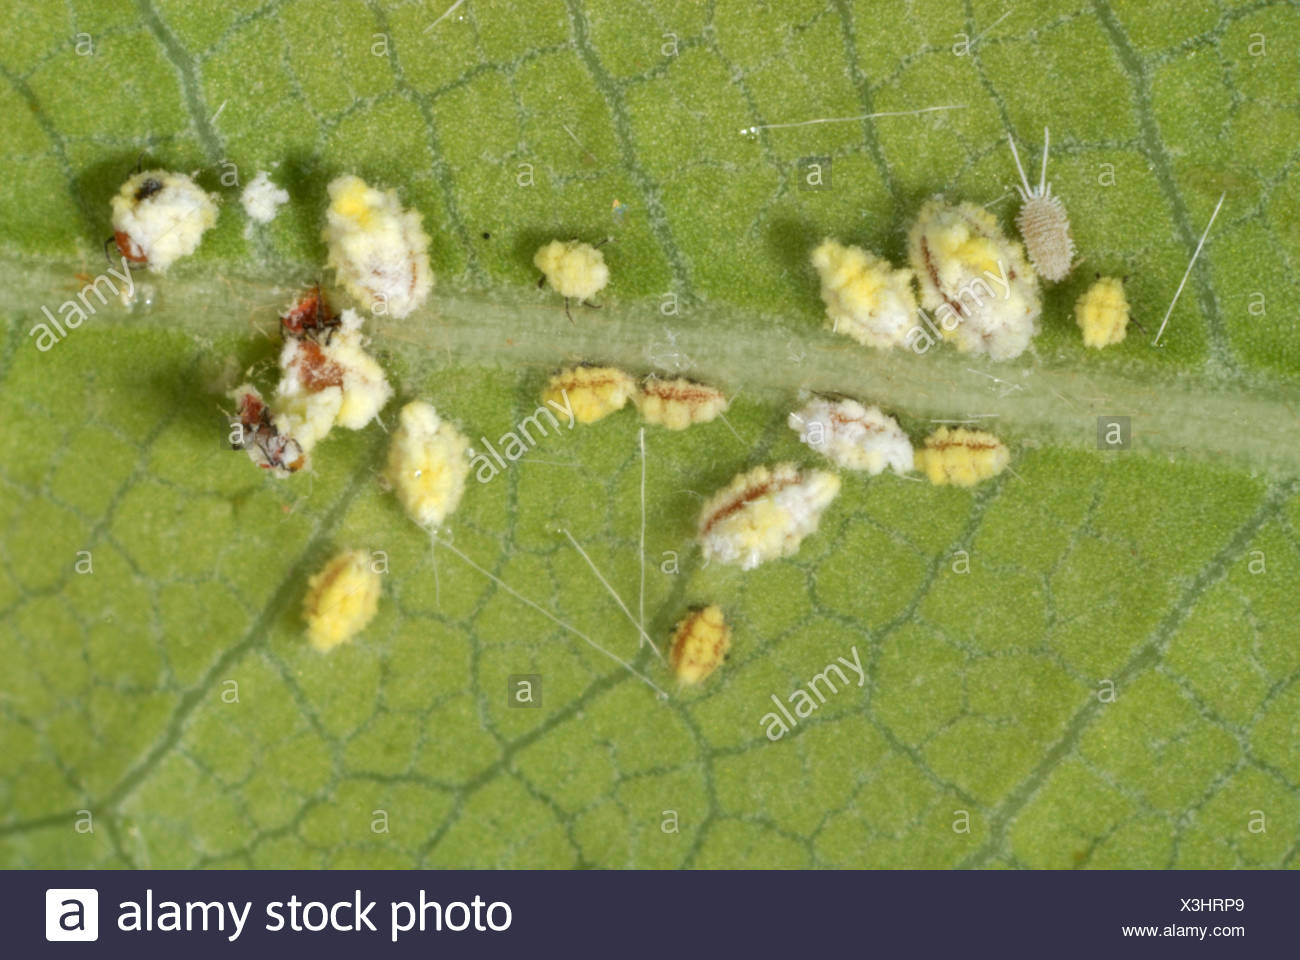 Cottony cushion scale (Icerya purchasi) nymphs on a leaf with a glasshouse mealybug - Stock Image